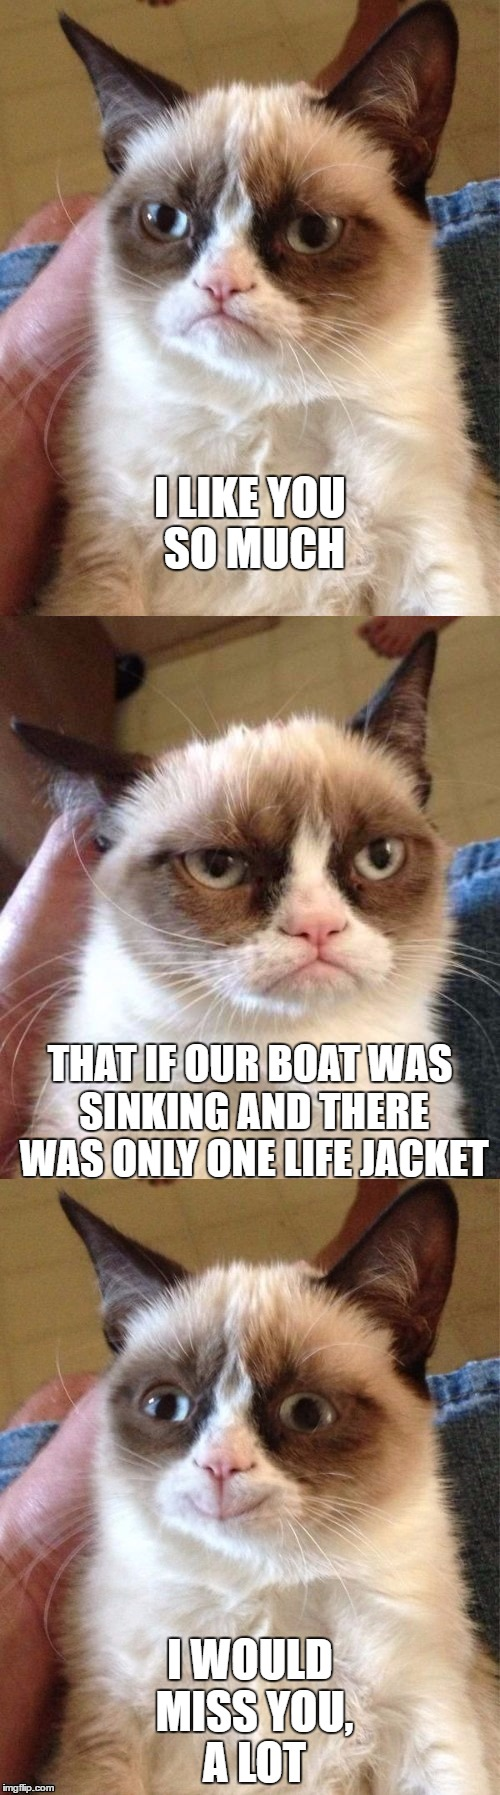 Bad Pun Grumpy Cat | I LIKE YOU SO MUCH I WOULD MISS YOU, A LOT THAT IF OUR BOAT WAS SINKING AND THERE WAS ONLY ONE LIFE JACKET | image tagged in bad pun grumpy cat | made w/ Imgflip meme maker